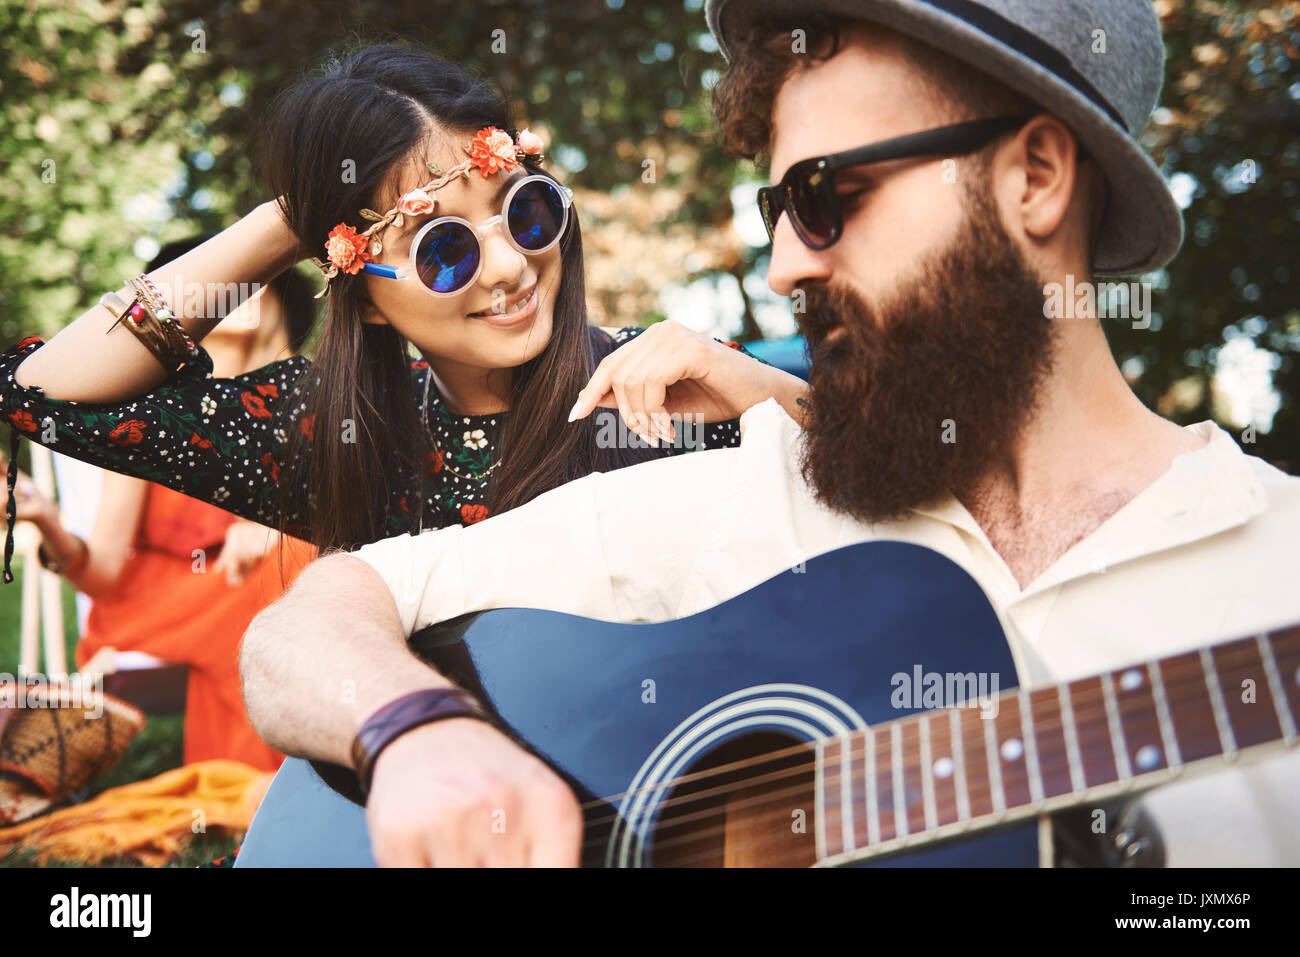 Young boho couple playing acoustic guitar at festival - Stock Image